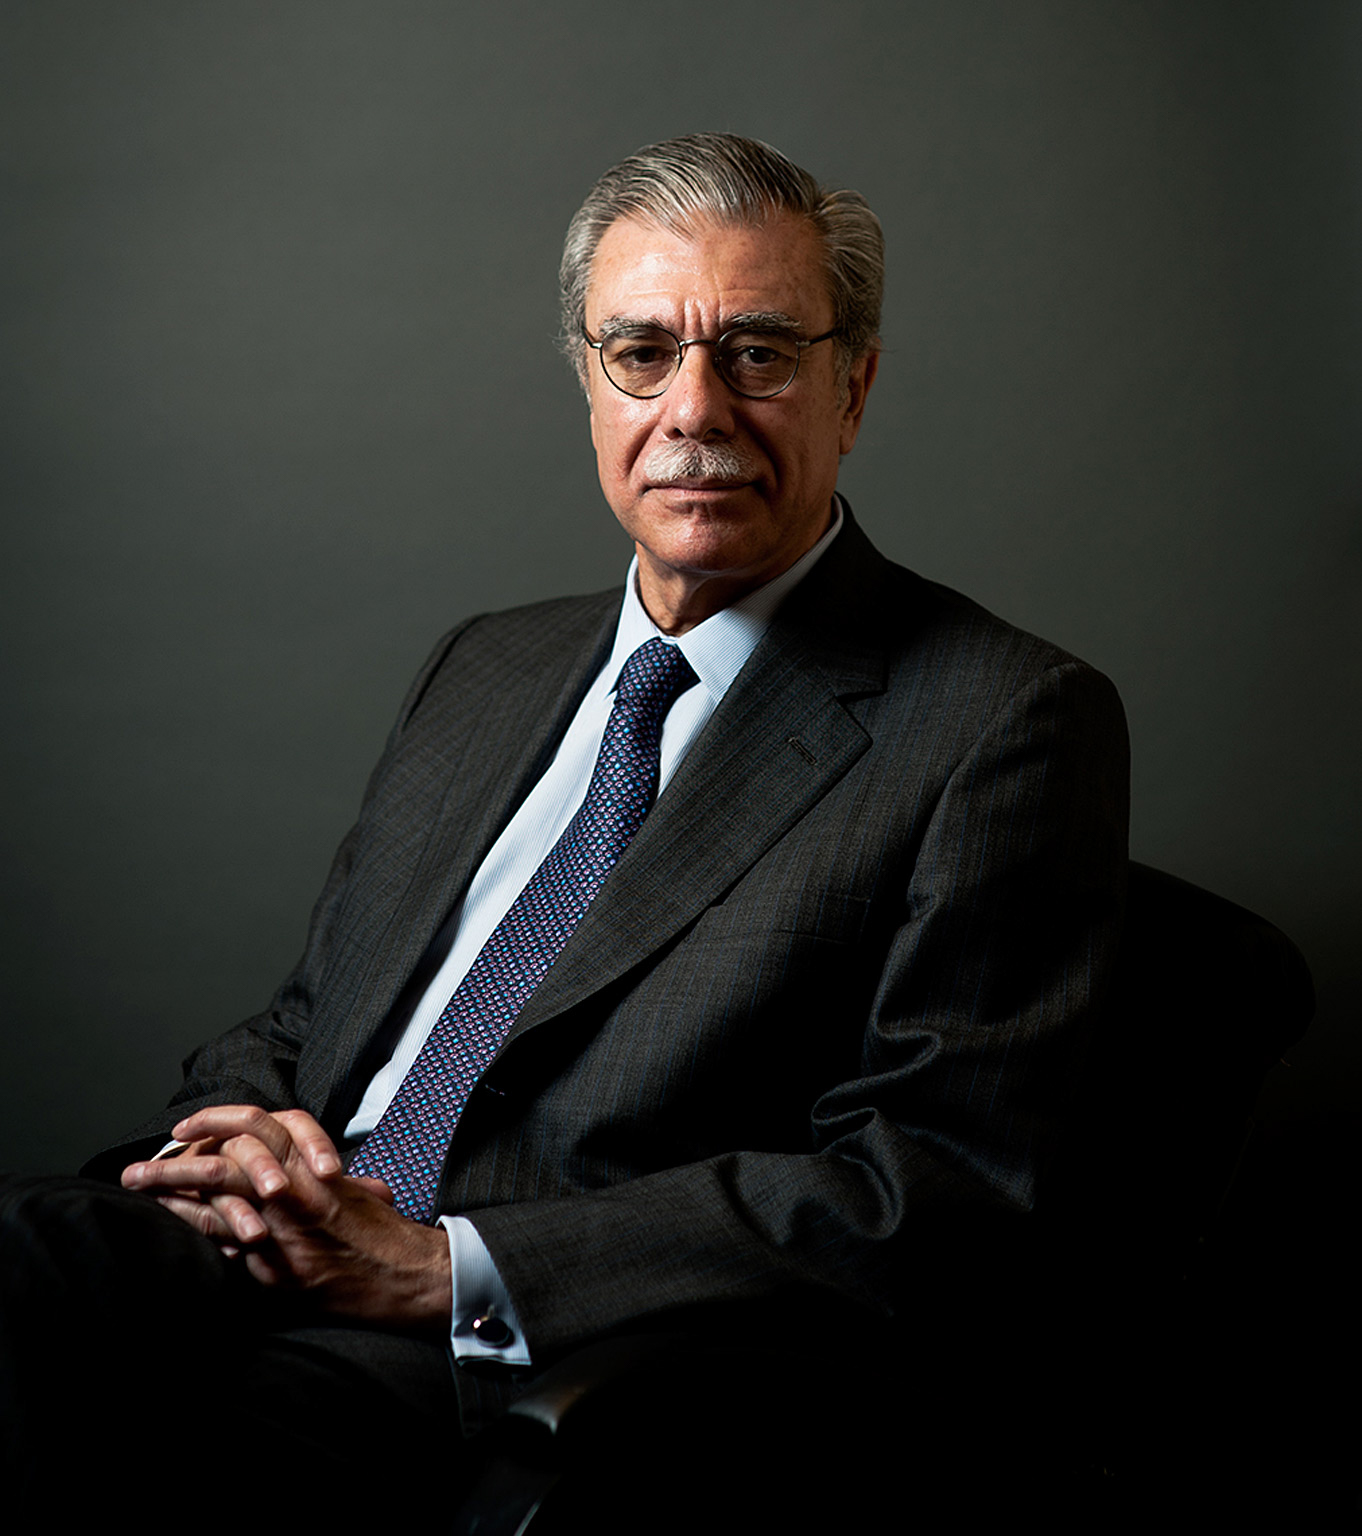 Studio portrait of Secretary of Commerce Carlos Guiterez